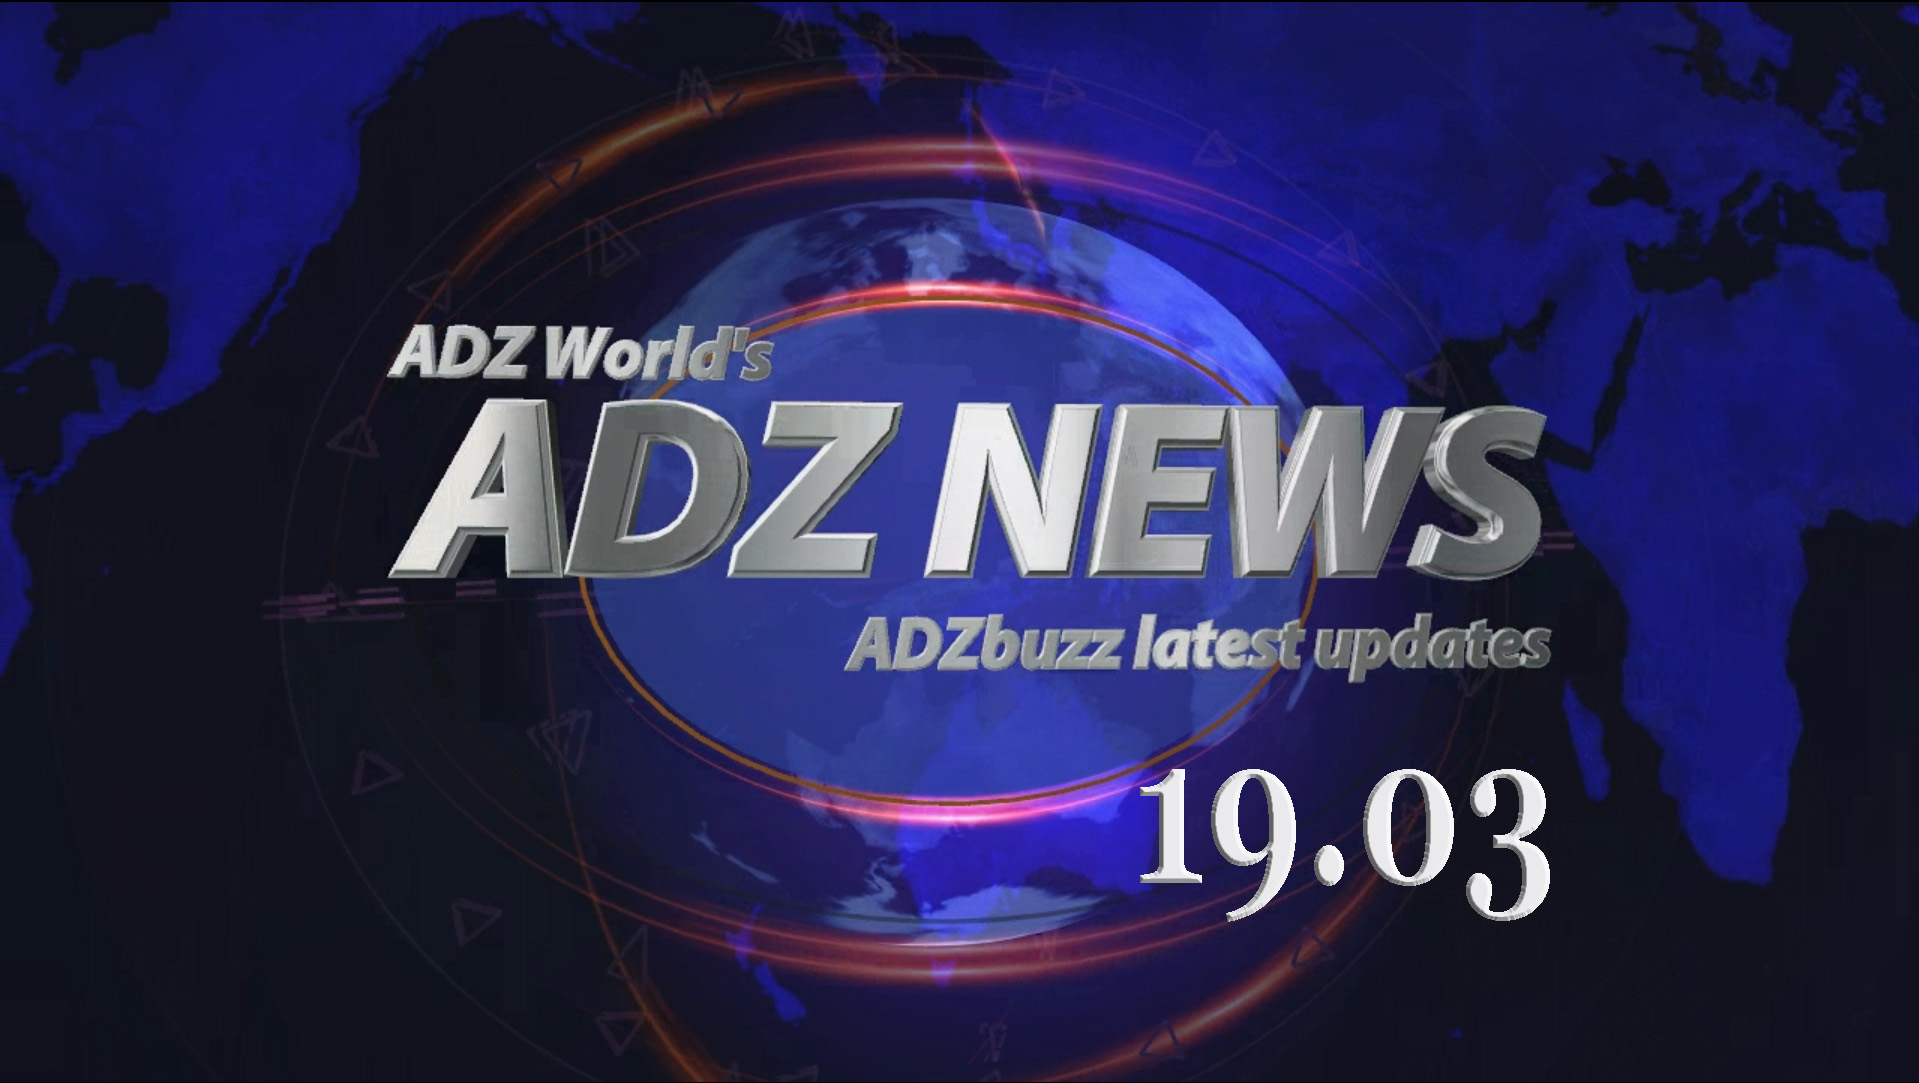 ADZ news 19.03 (VIDEO)